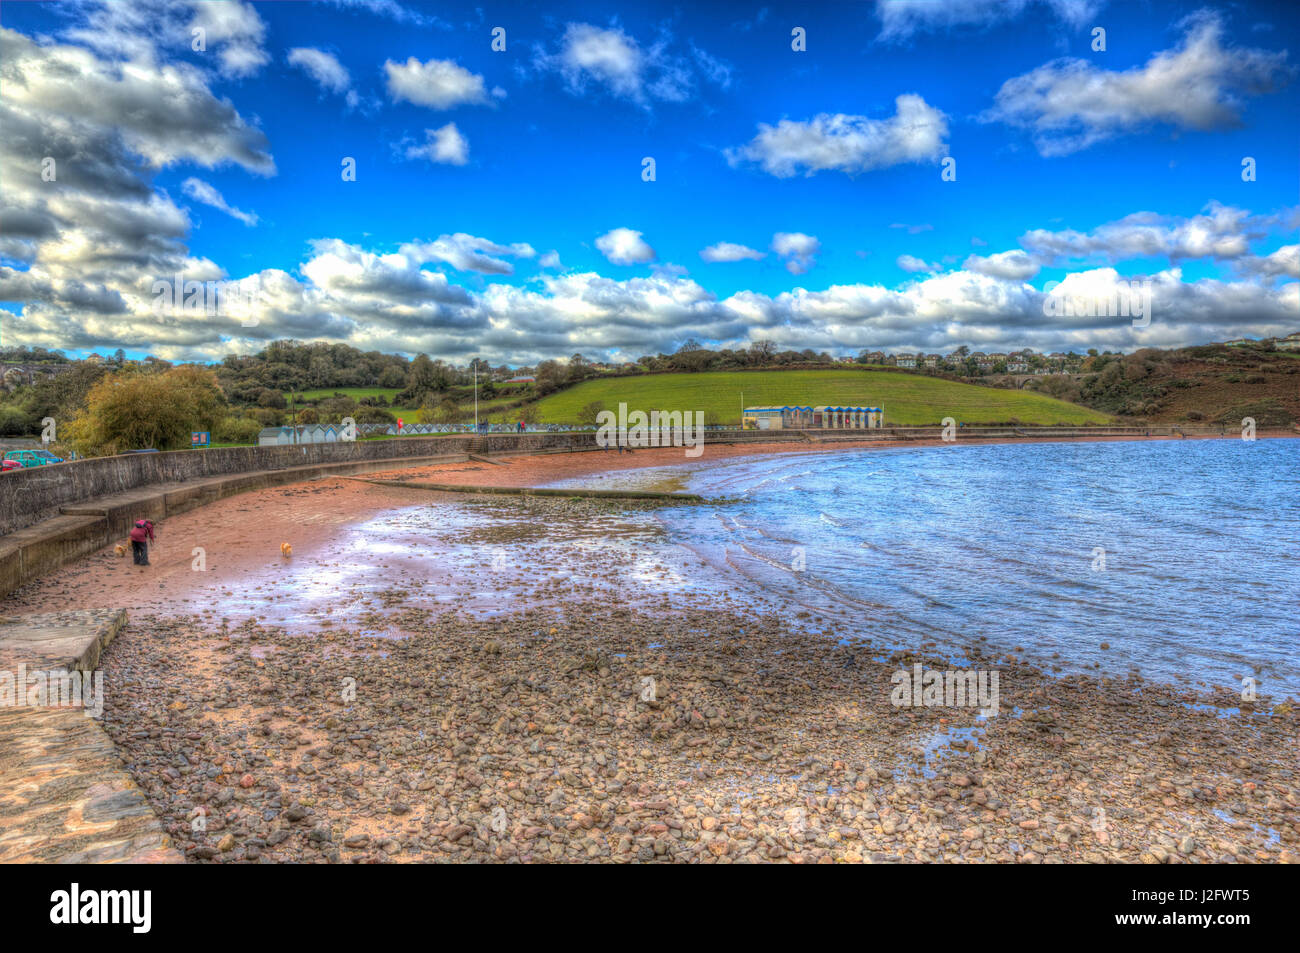 Broadsands beach south of Torquay Devon UK in colourful HDR - Stock Image